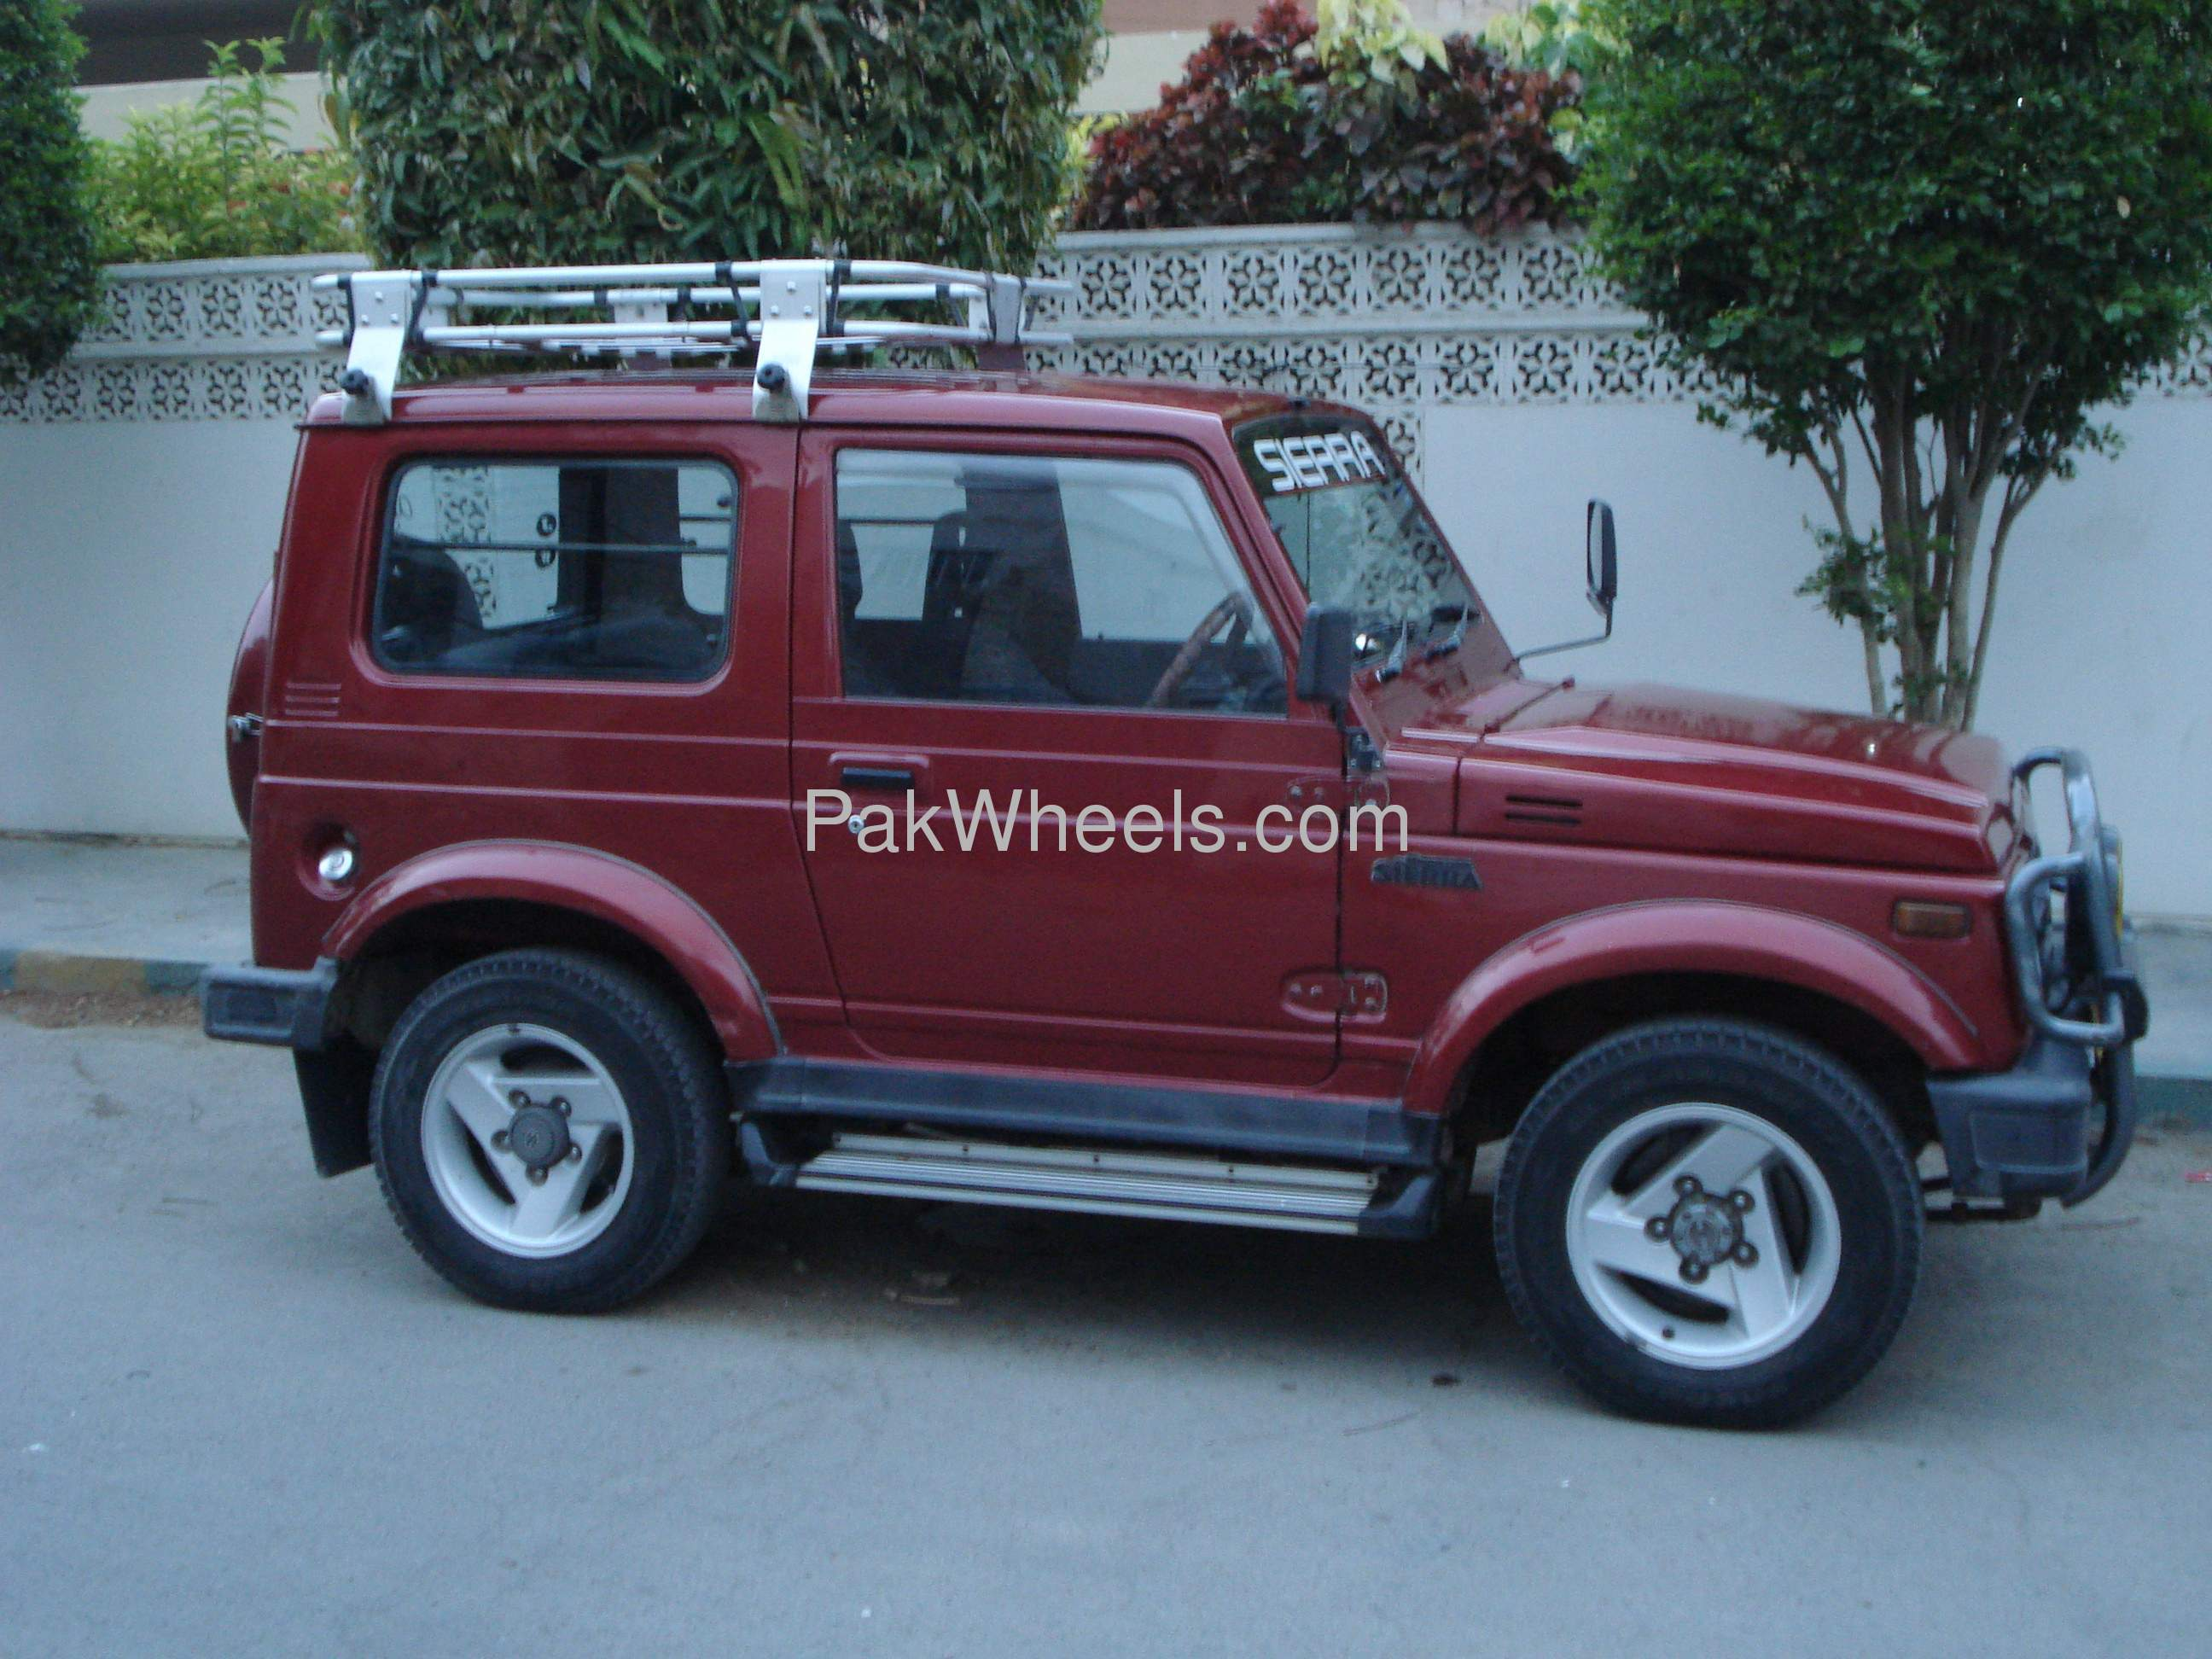 suzuki jimny jlx 1993 for sale in karachi pakwheels. Black Bedroom Furniture Sets. Home Design Ideas